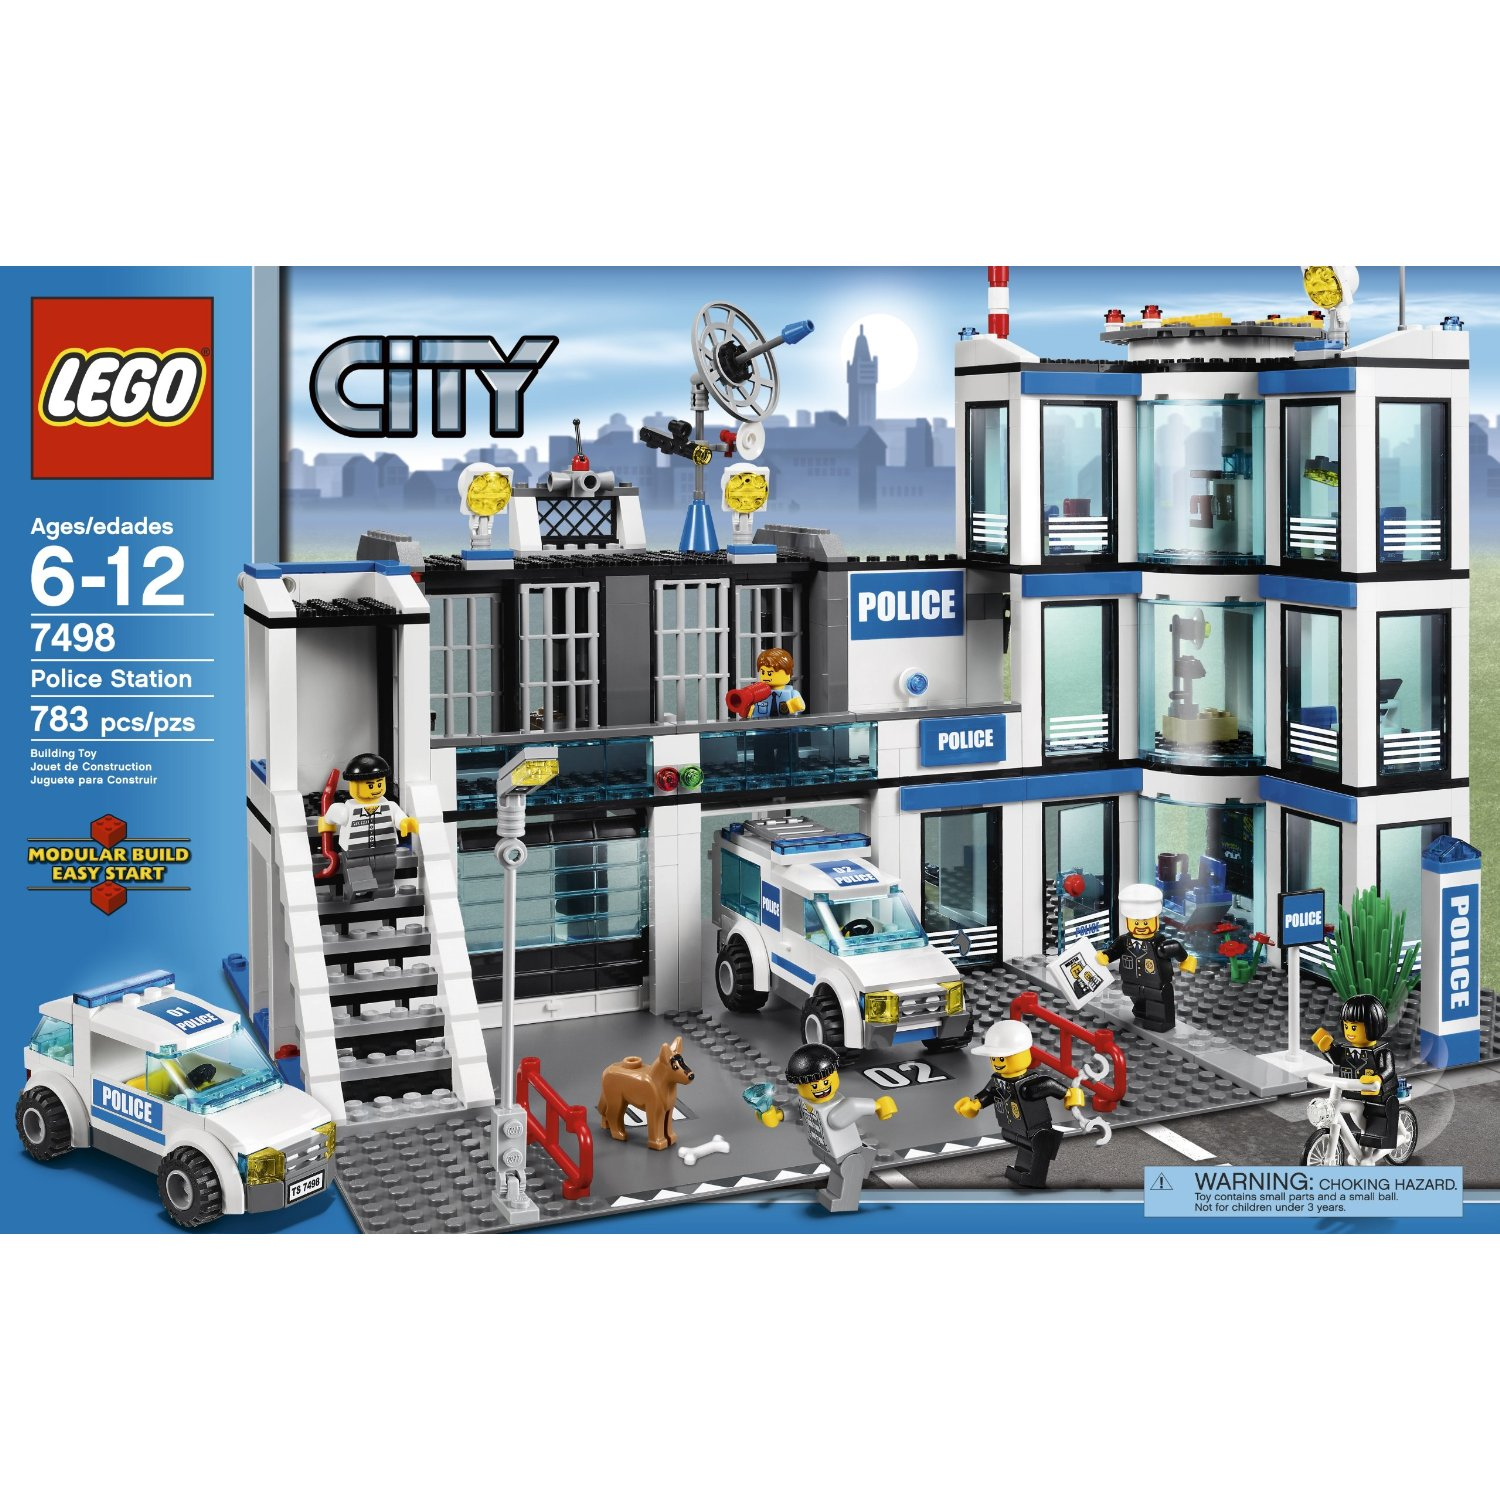 LEGO CITY GAMES & TOYS: LEGO Police Station 7498